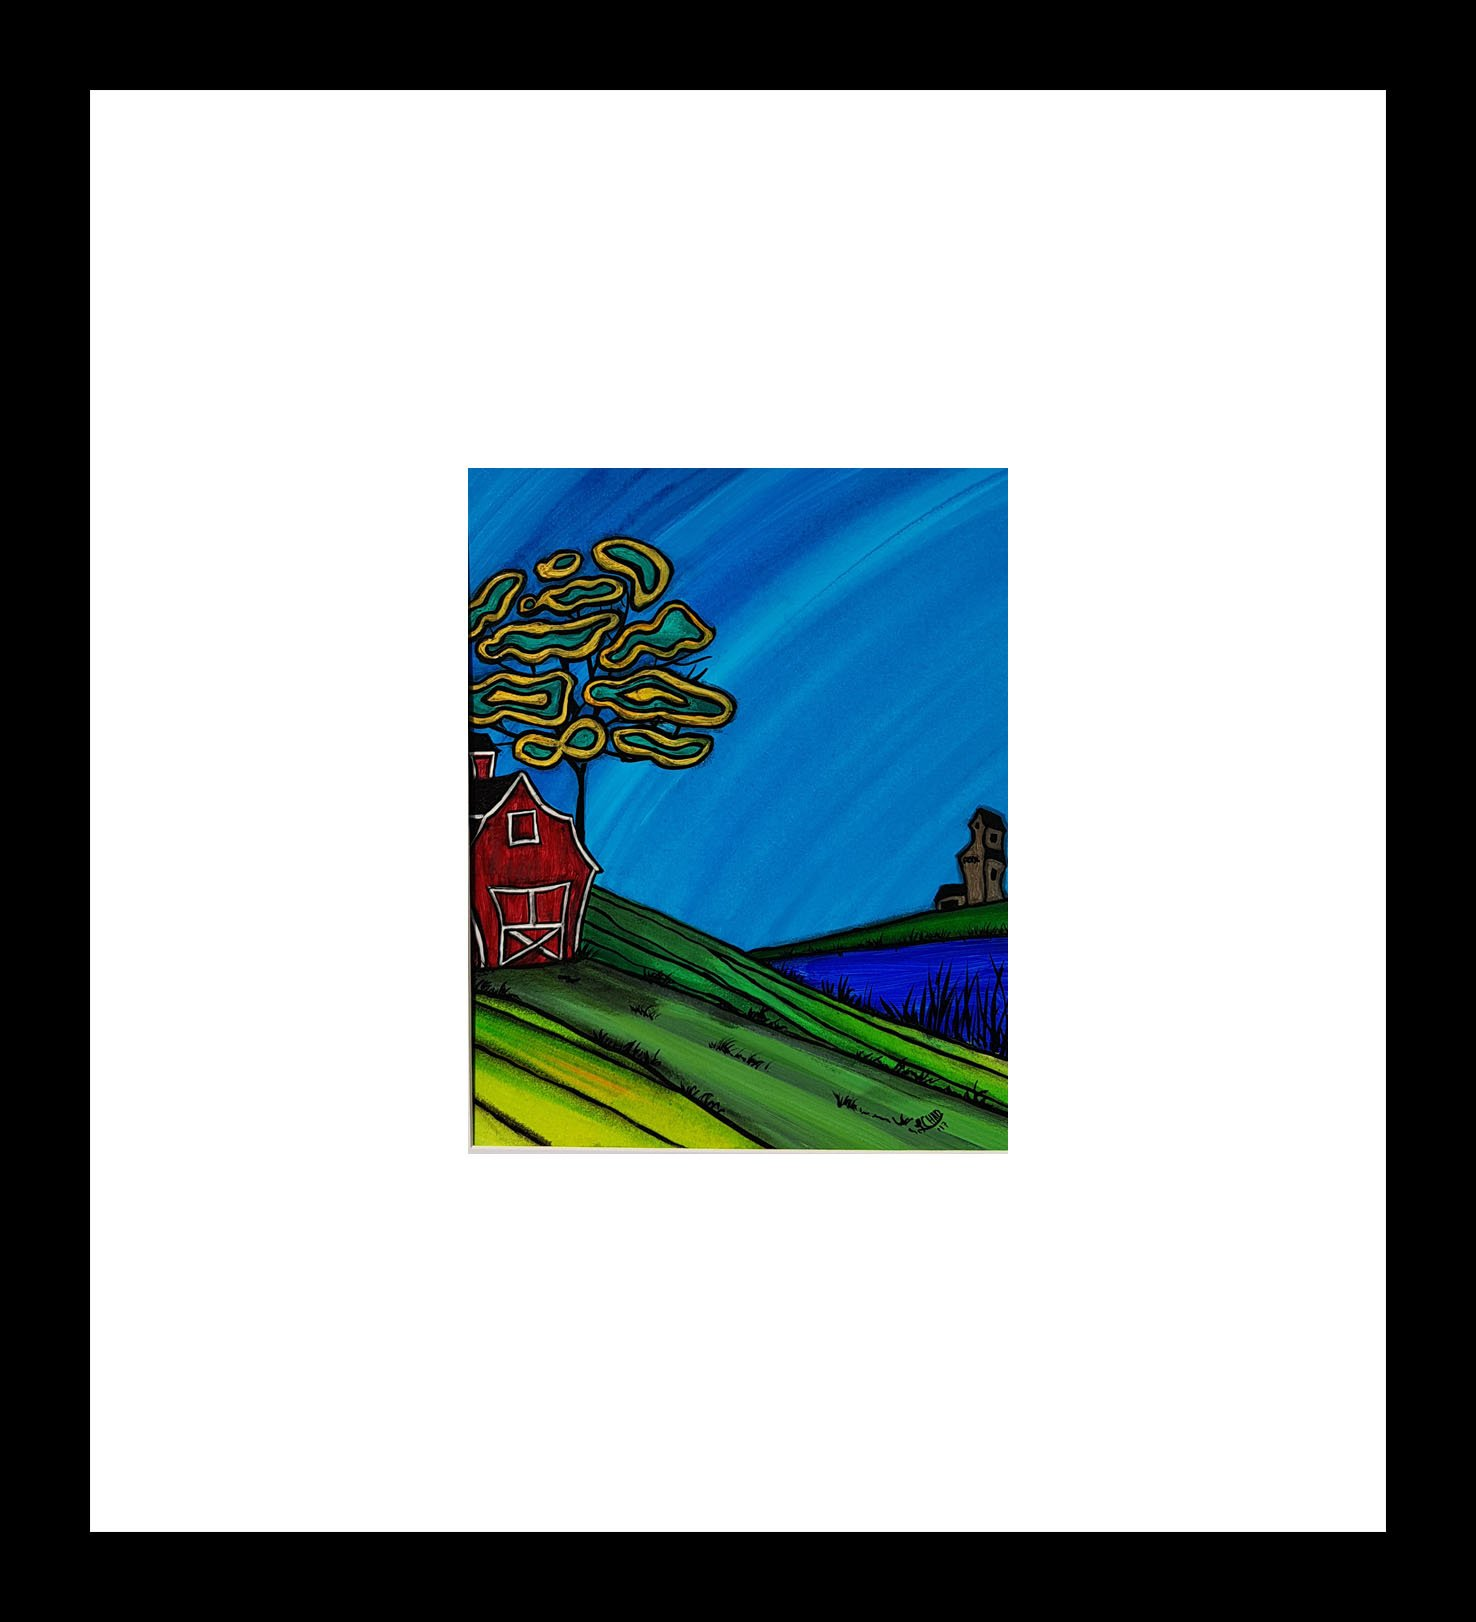 """Barn on the Hill"" [2018] Image: 7.5"" x 9.5"" Framed: 20"" x 20"" Acrylic on 246 lb. paper $200.00 SOLD"